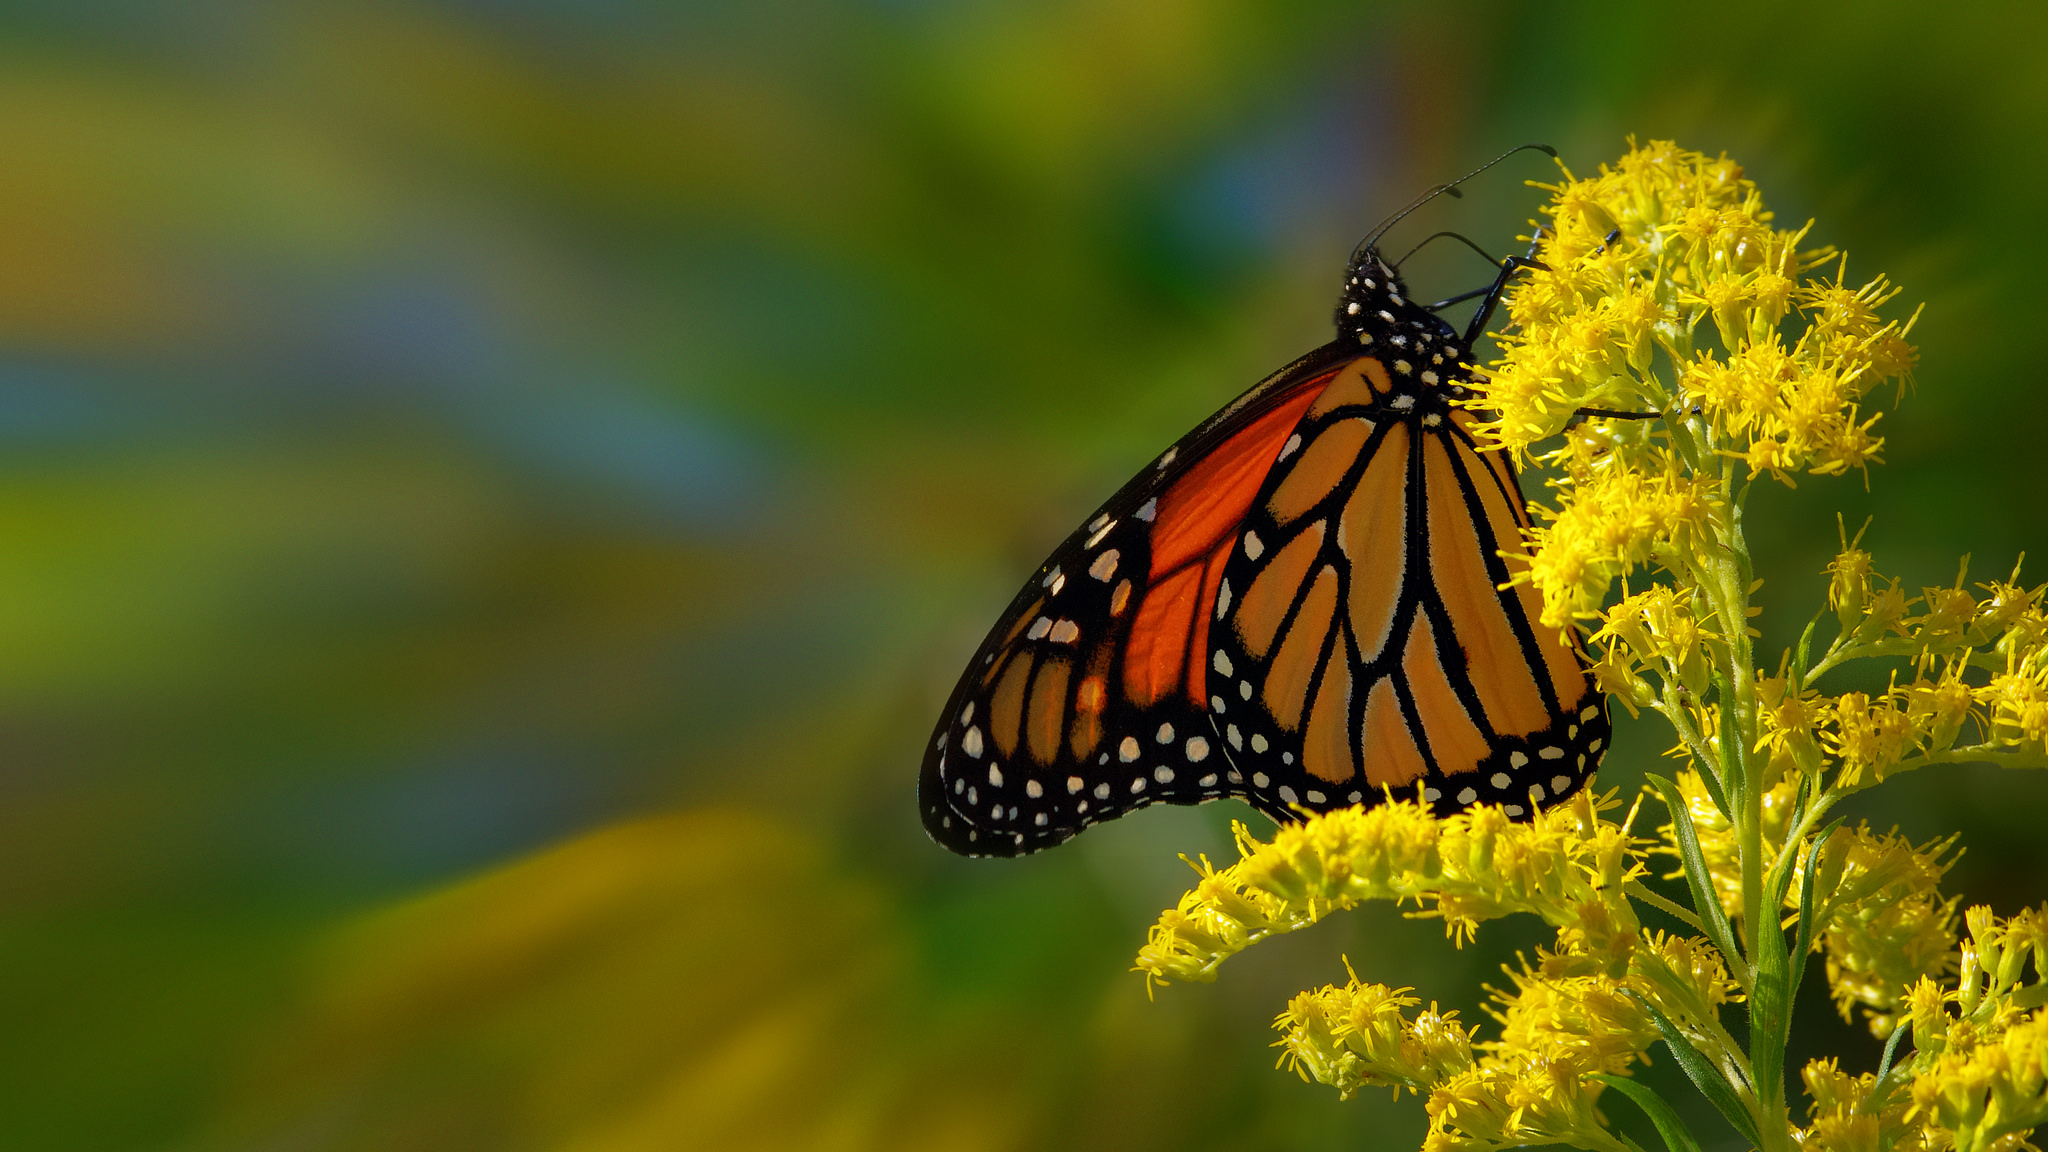 Zoom Monarch Butterfly HD Wallpaper Flickr   Photo Sharing 2048x1152